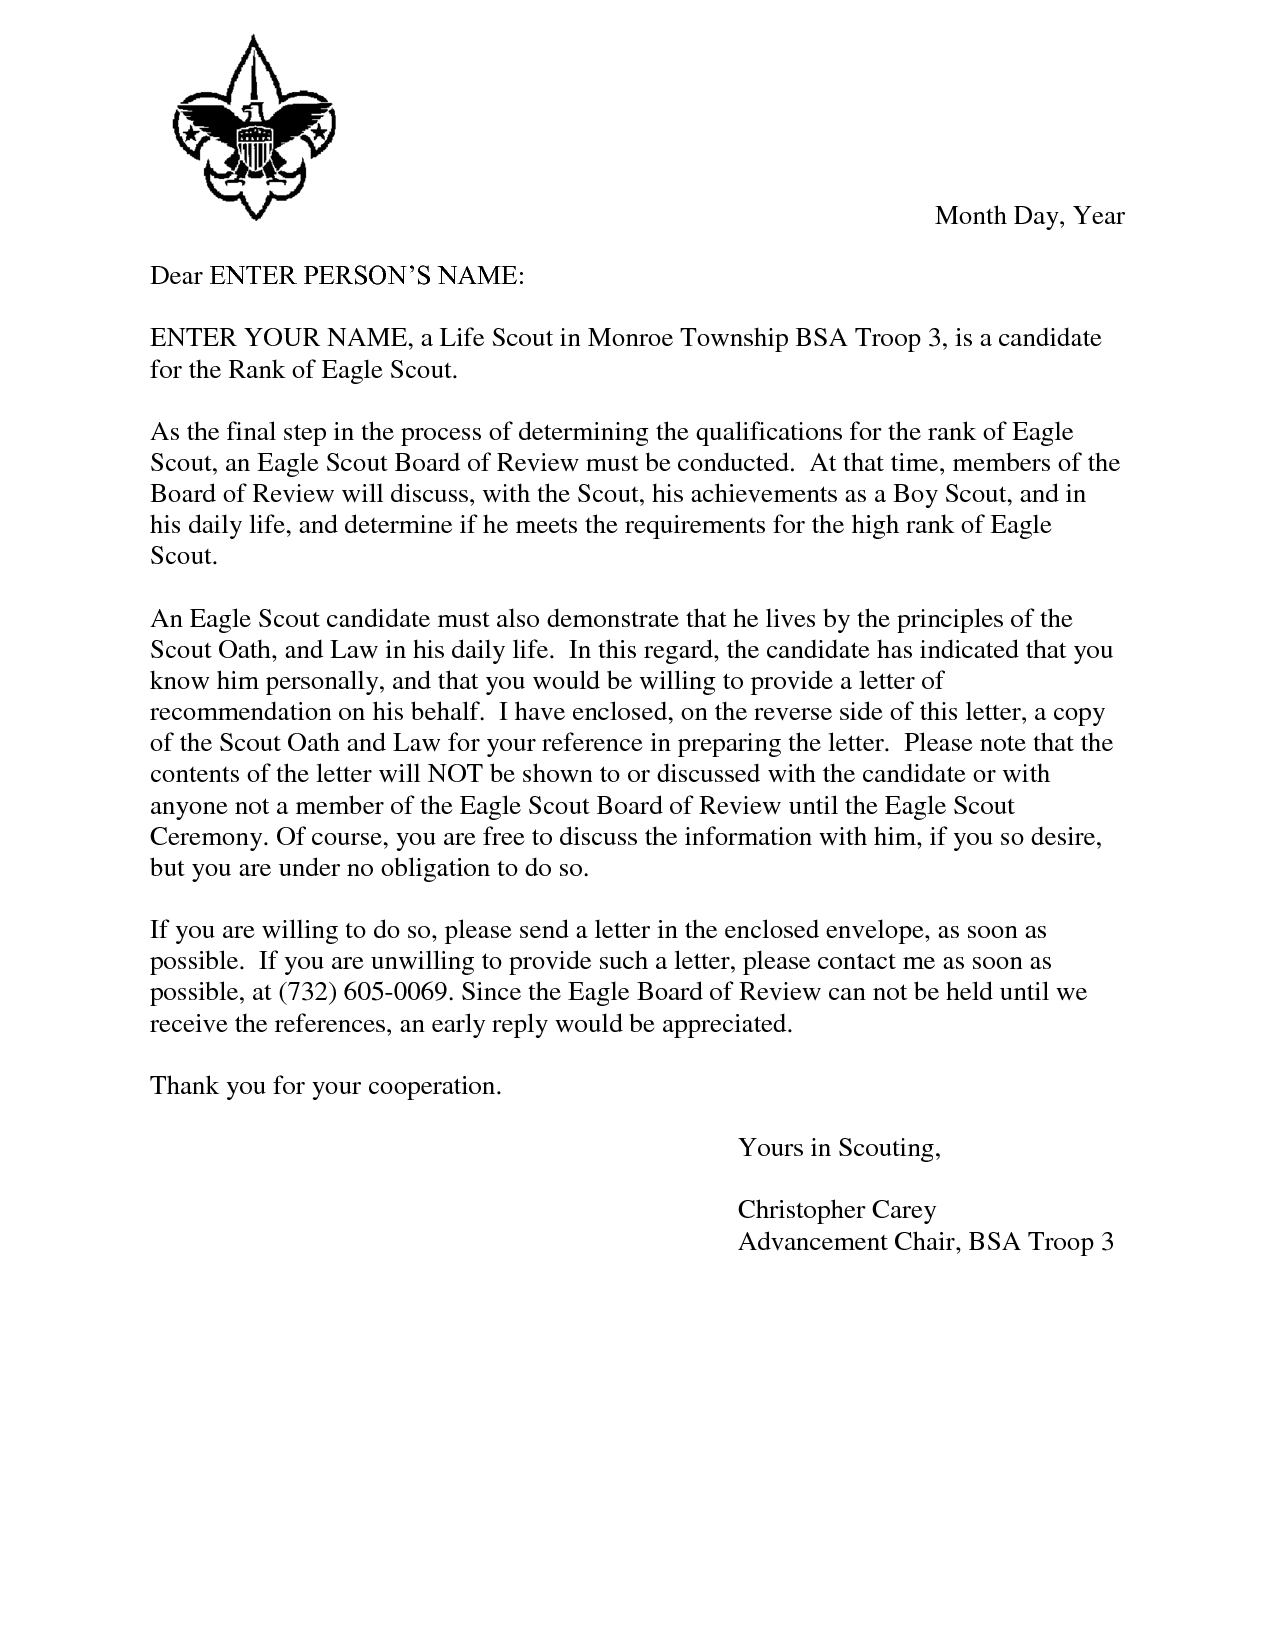 reference request letter template example-Eagle Scout Reference Request Sample Letter DOC 7 by Hfr990Q TGQFAGp7 11-j